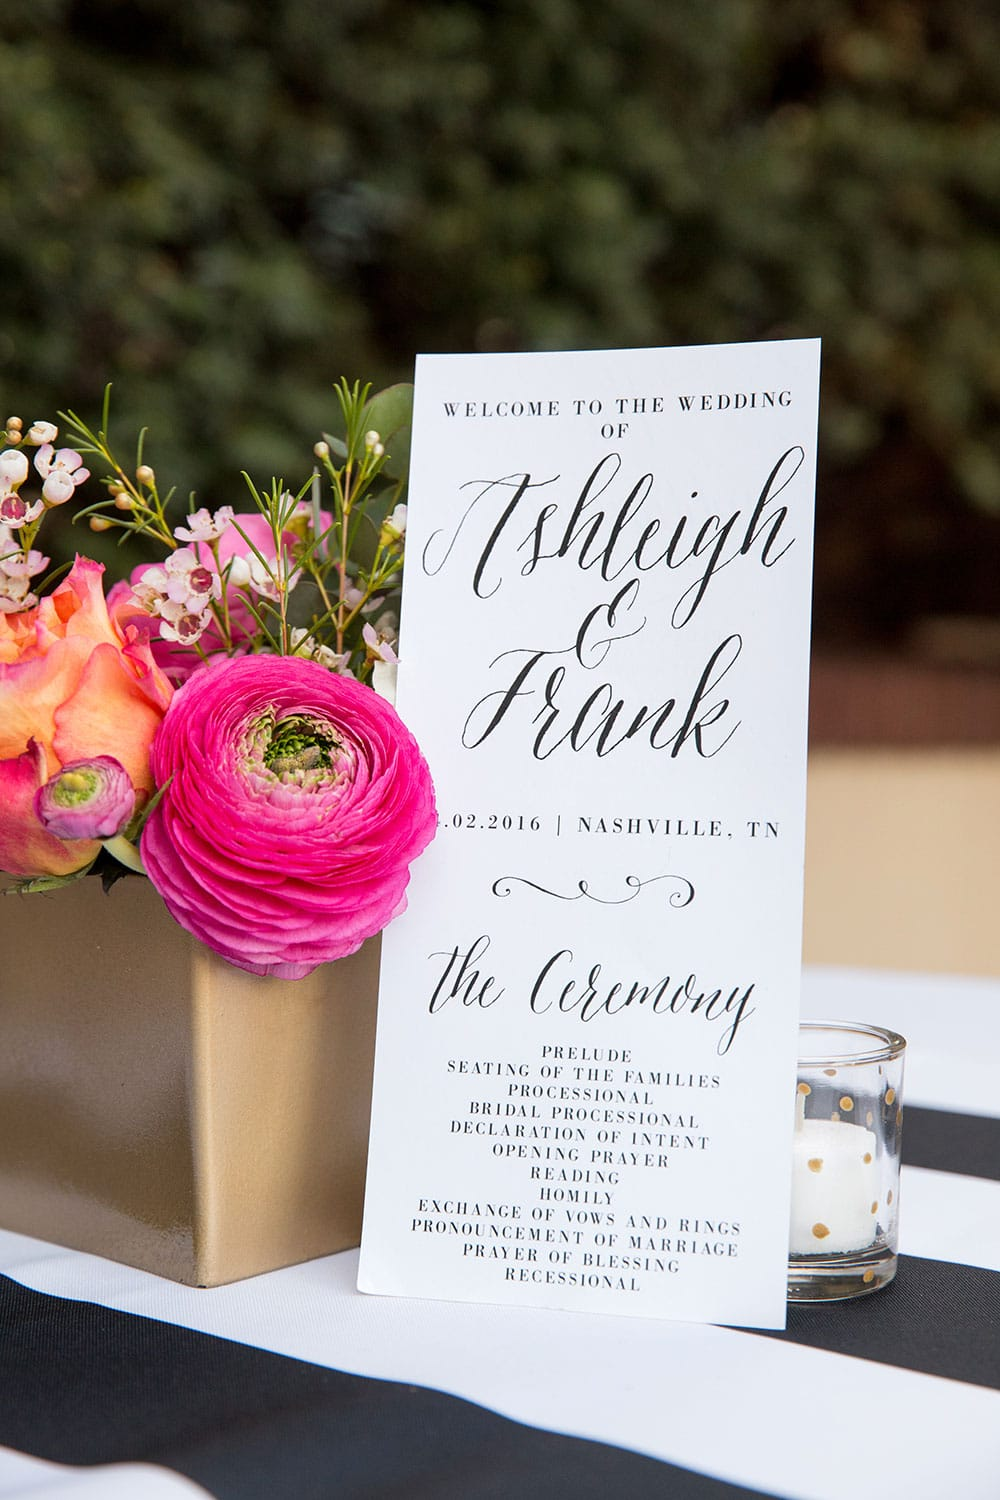 Black and White Striped Wedding Details!